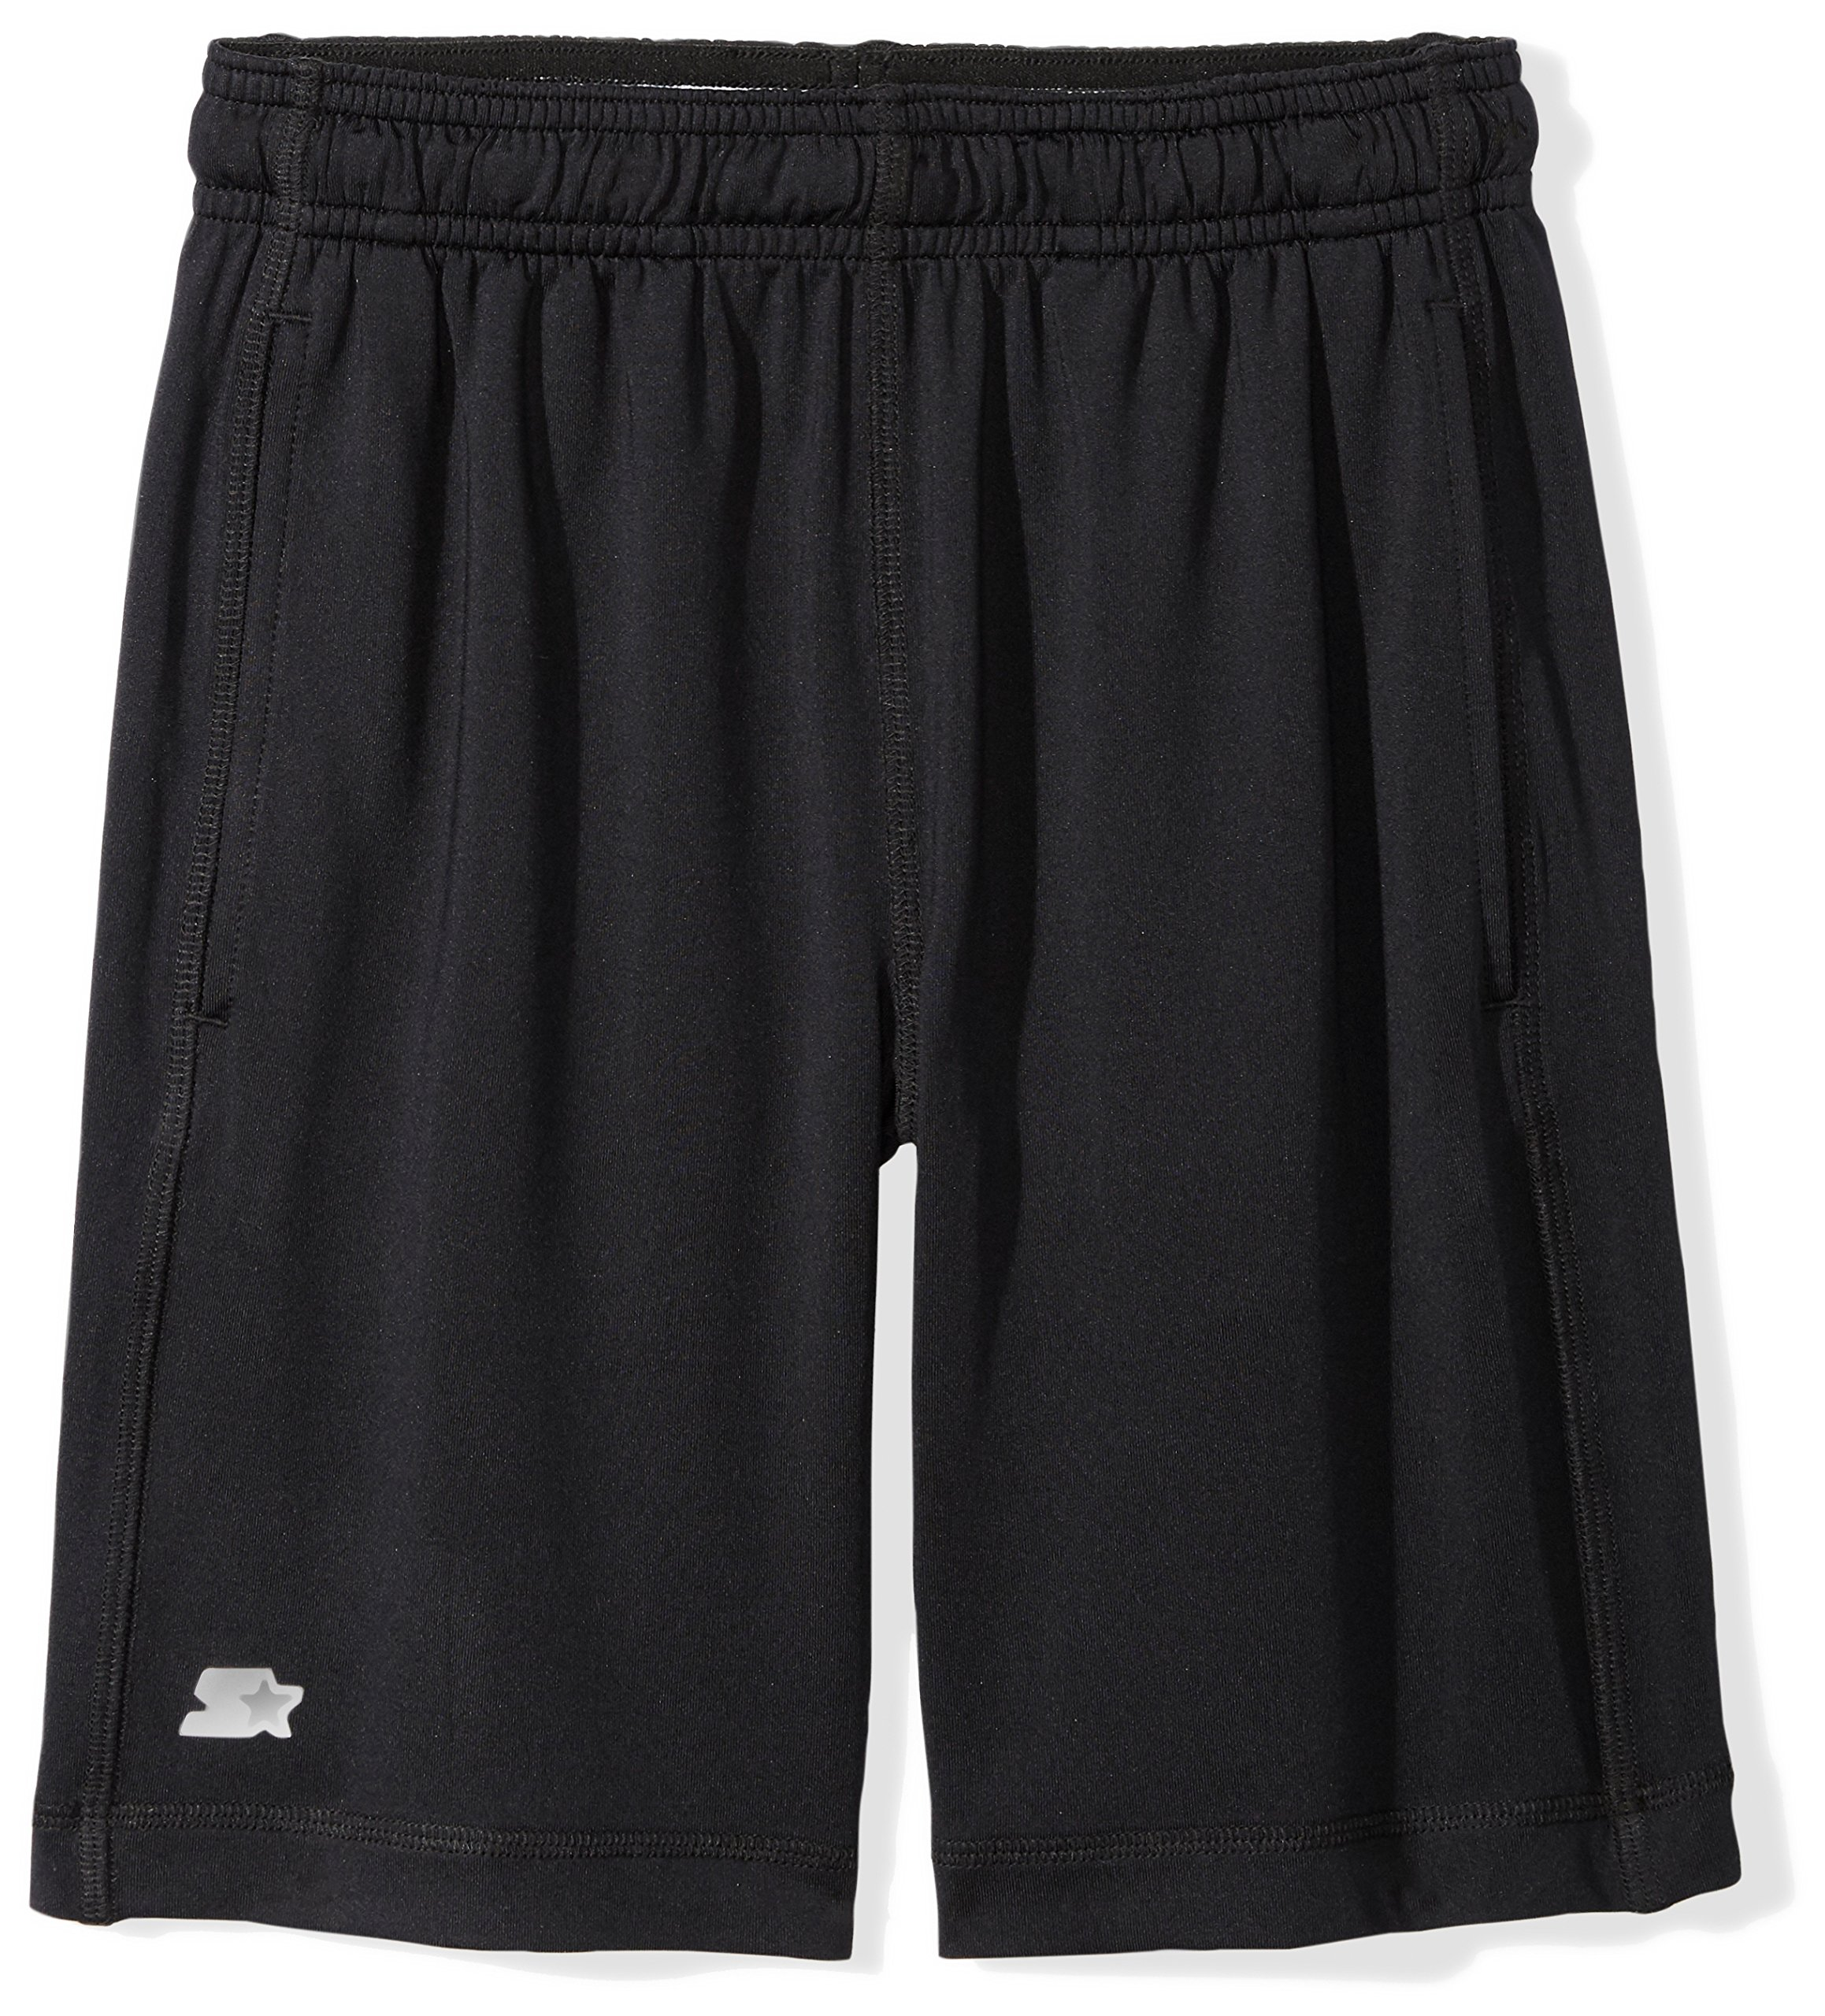 Starter Boys' 8'' Stretch Training Short with Pockets, Prime Exclusive, Black, M (8/10)